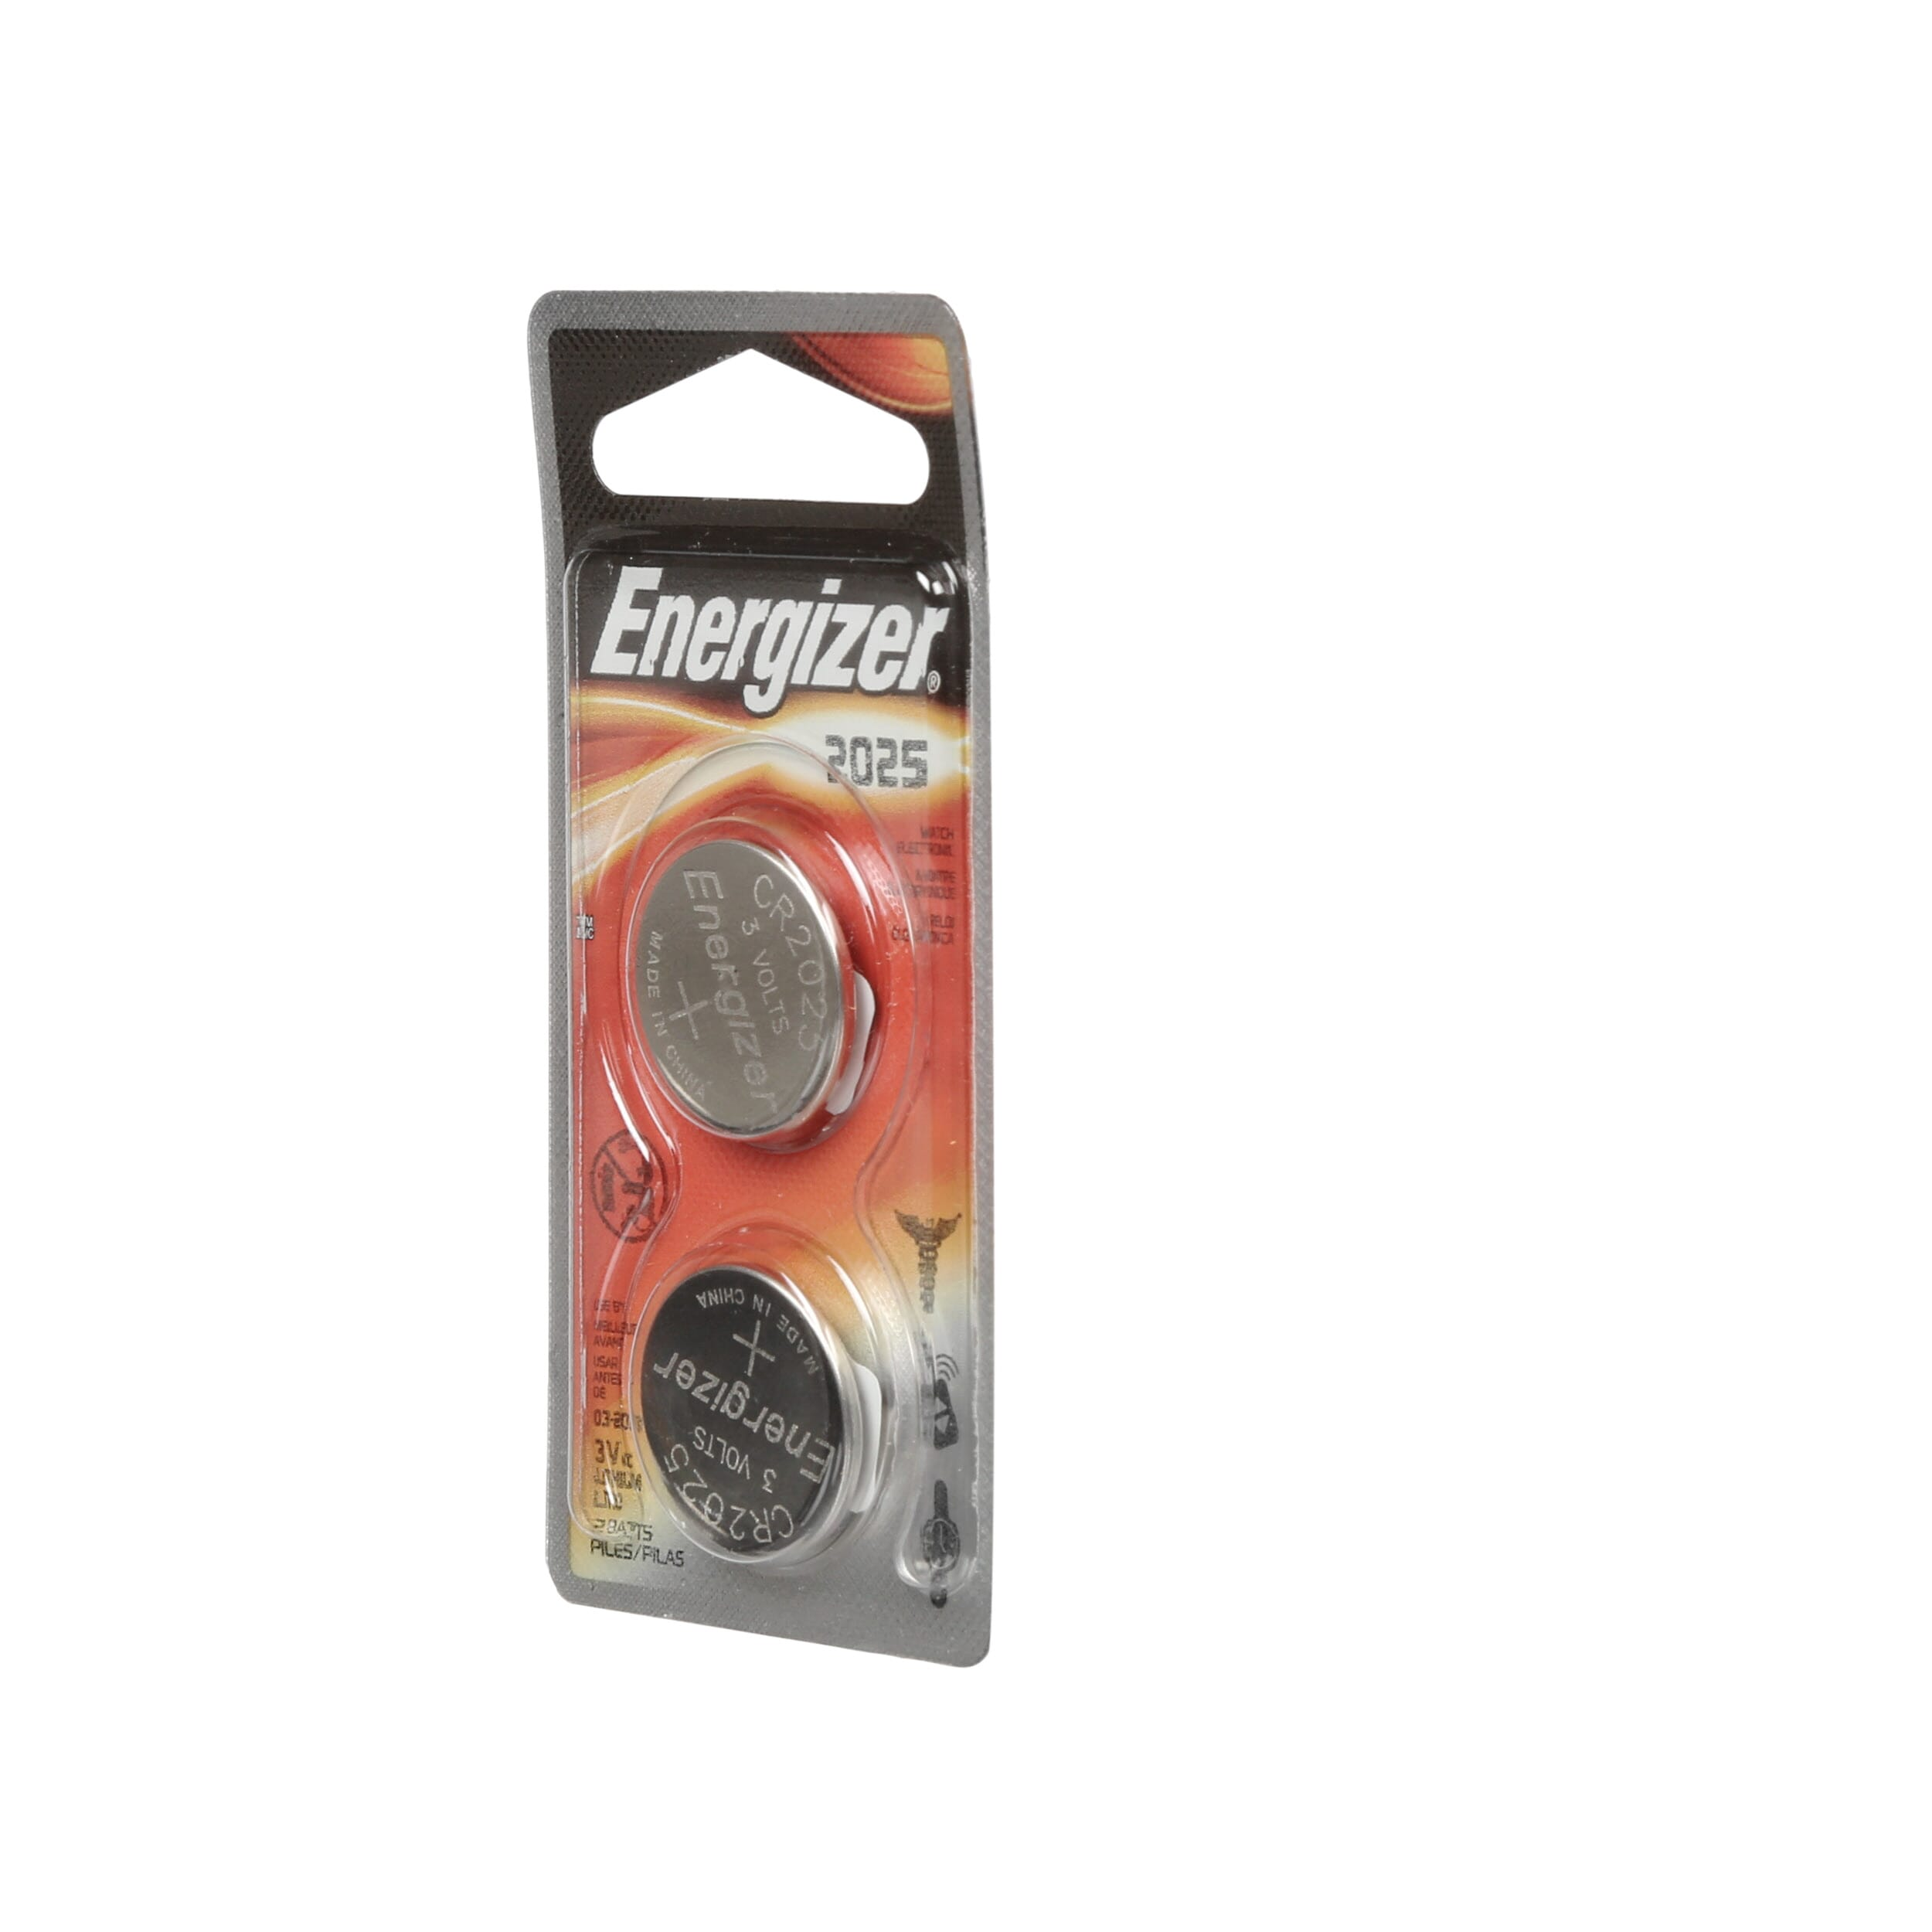 Energizer 2032 3-Volt Battery (2-Pack)-2032BP-2 - The Home Depot